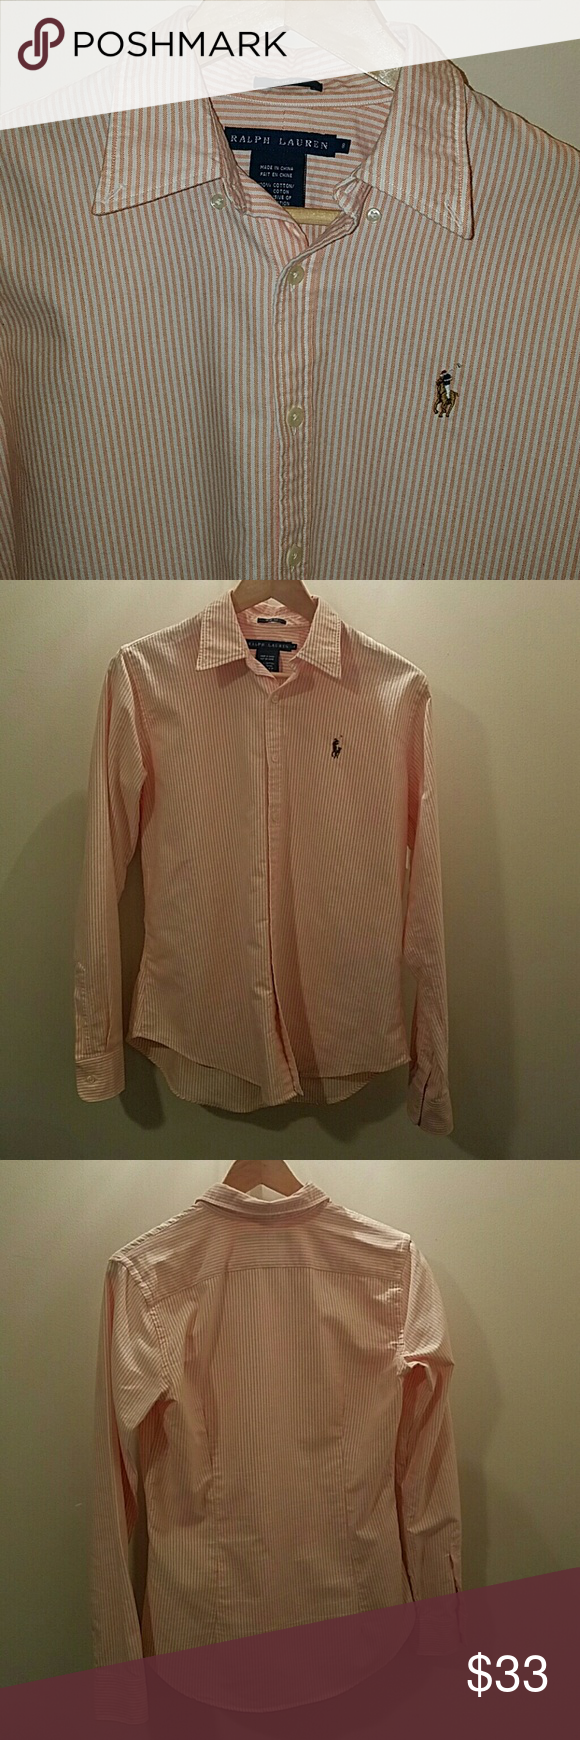 Polo button down Orange/peach and white stripe Oxford from ralph lauren.  Worn a few times.  Pearl buttons.  Great condition, they don't make this color any more. Slim fit, so it's tailed along the waist for a feminine fit Ralph Lauren Tops Button Down Shirts